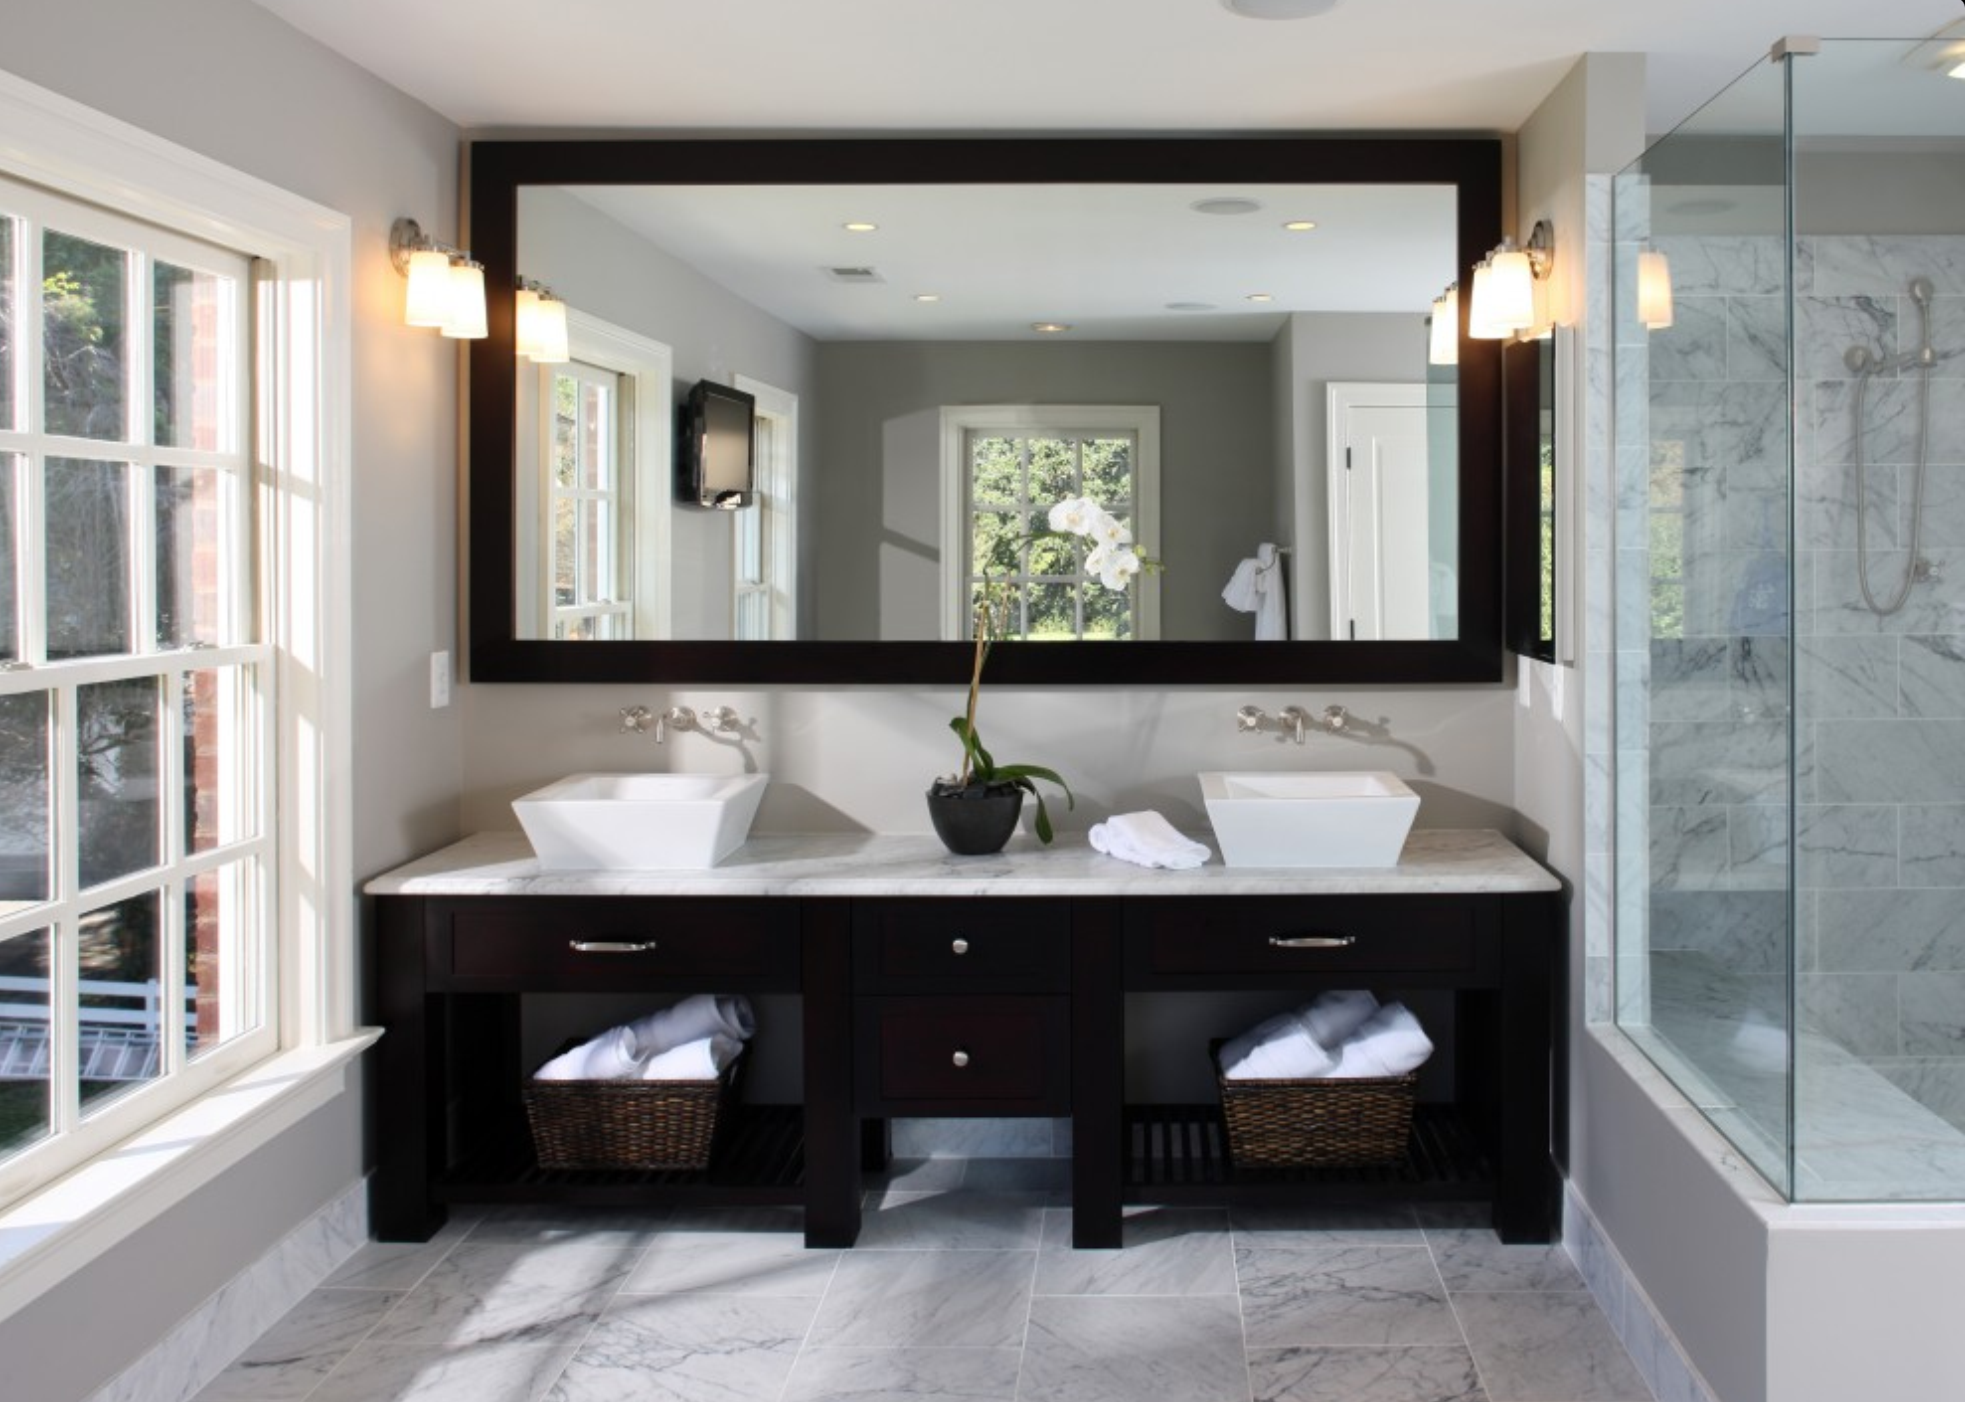 remodeling a bathroom. 2016 Bathroom Remodeling Trends Preparing For A Remodel  HomeAdvisor